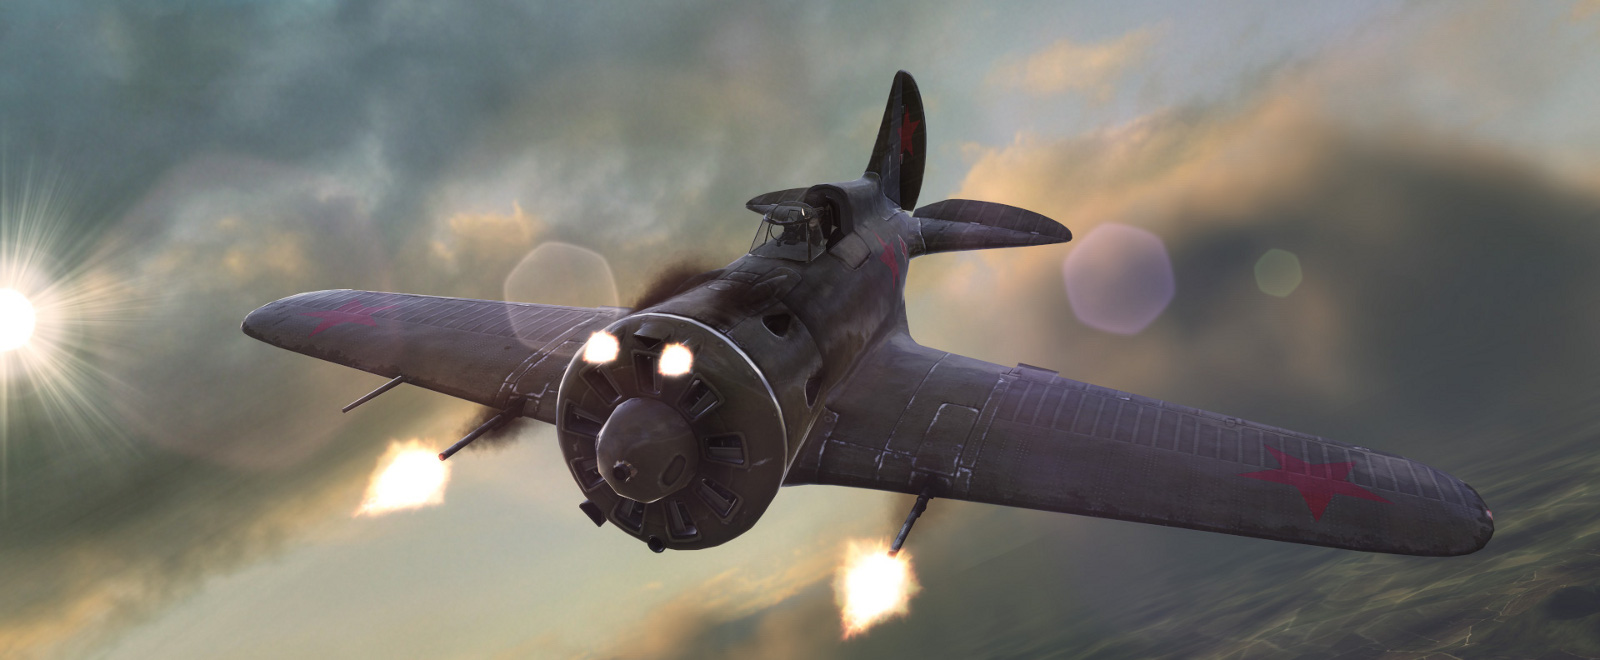 World of Warplanes - Gunner